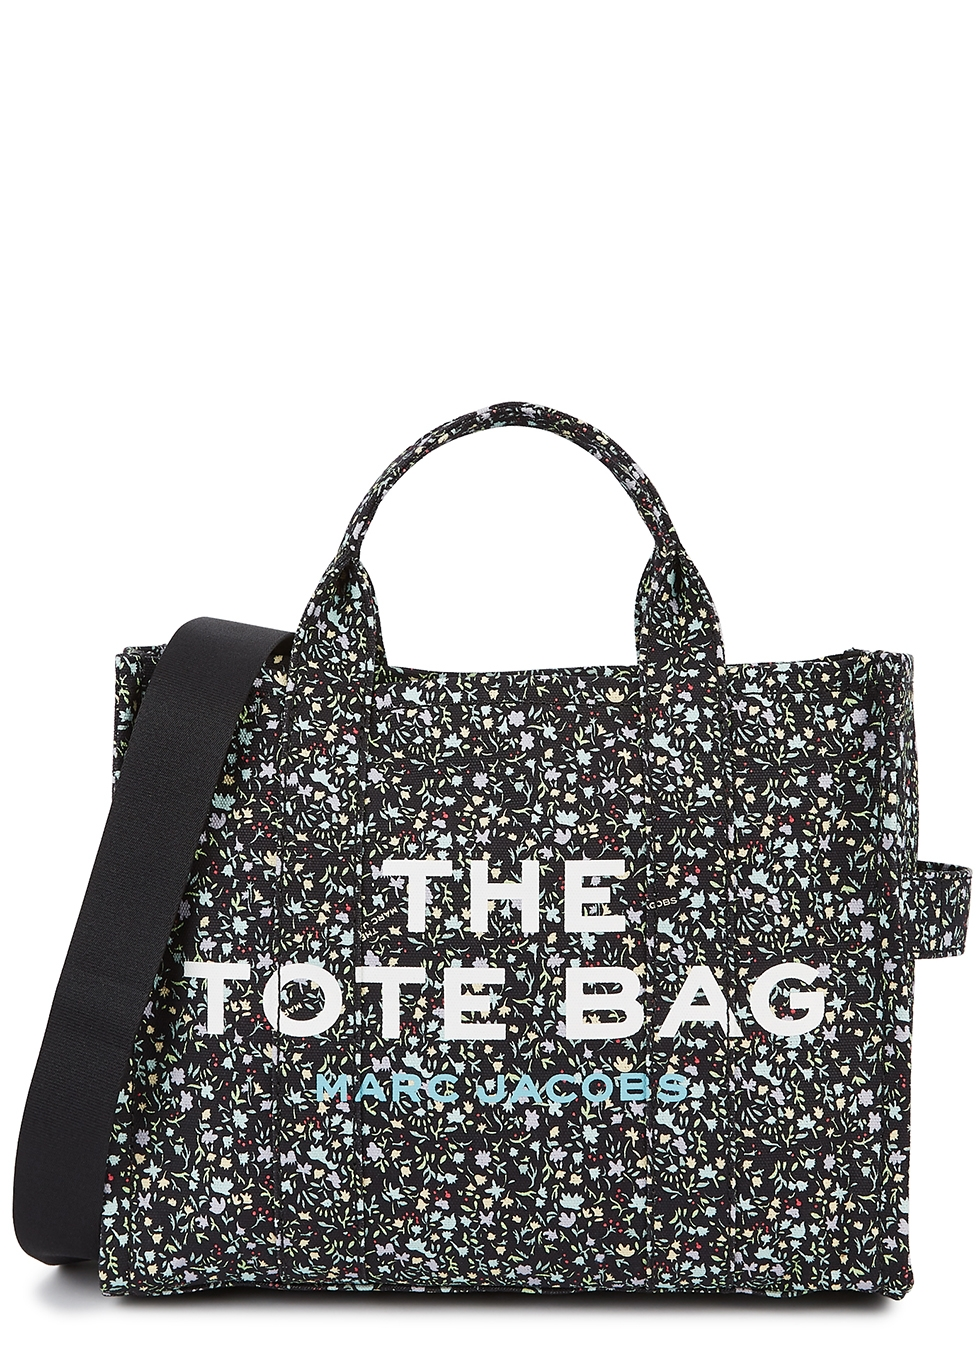 The Traveler small floral-print canvas tote